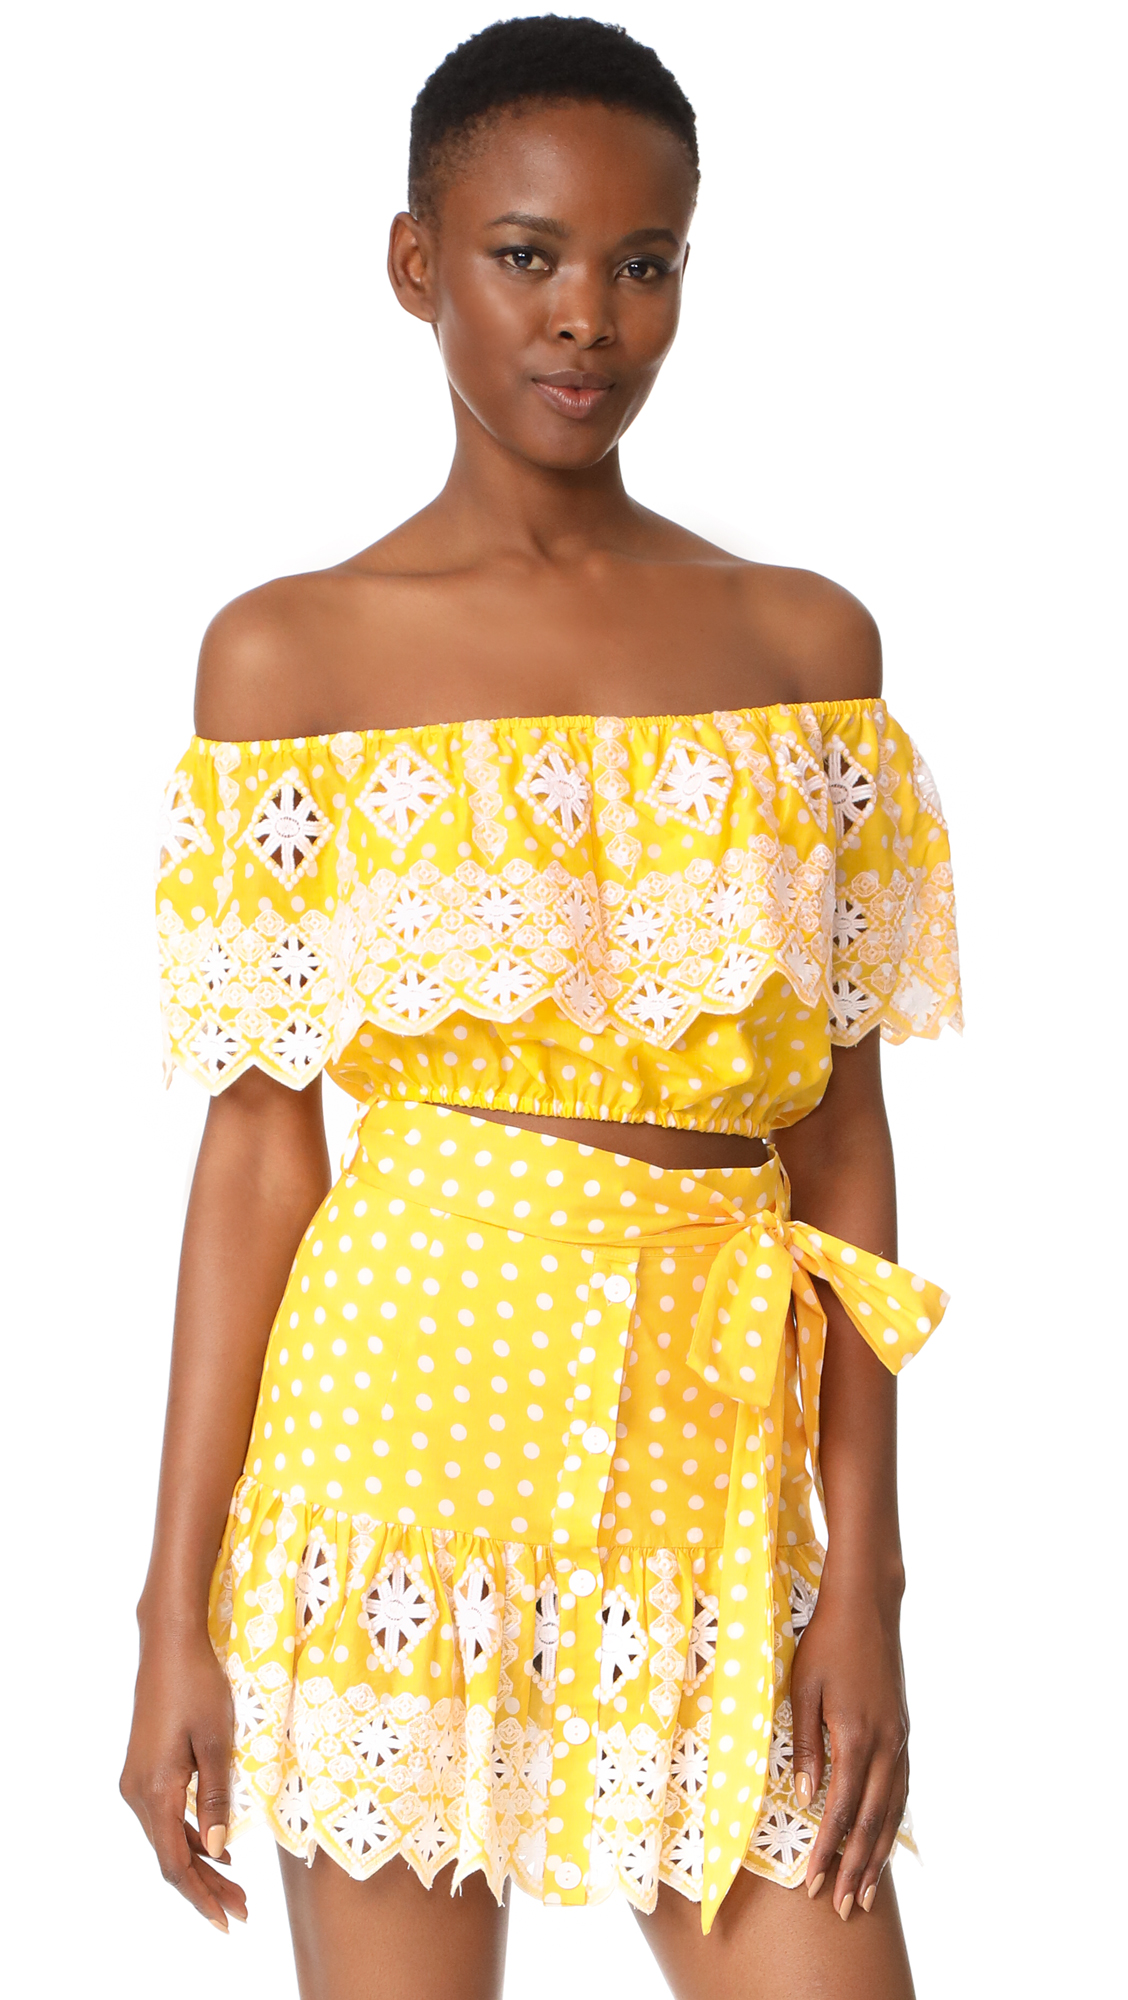 Miguelina Dakota Off the Shoulder Top - Rubber Ducky Polka Dot